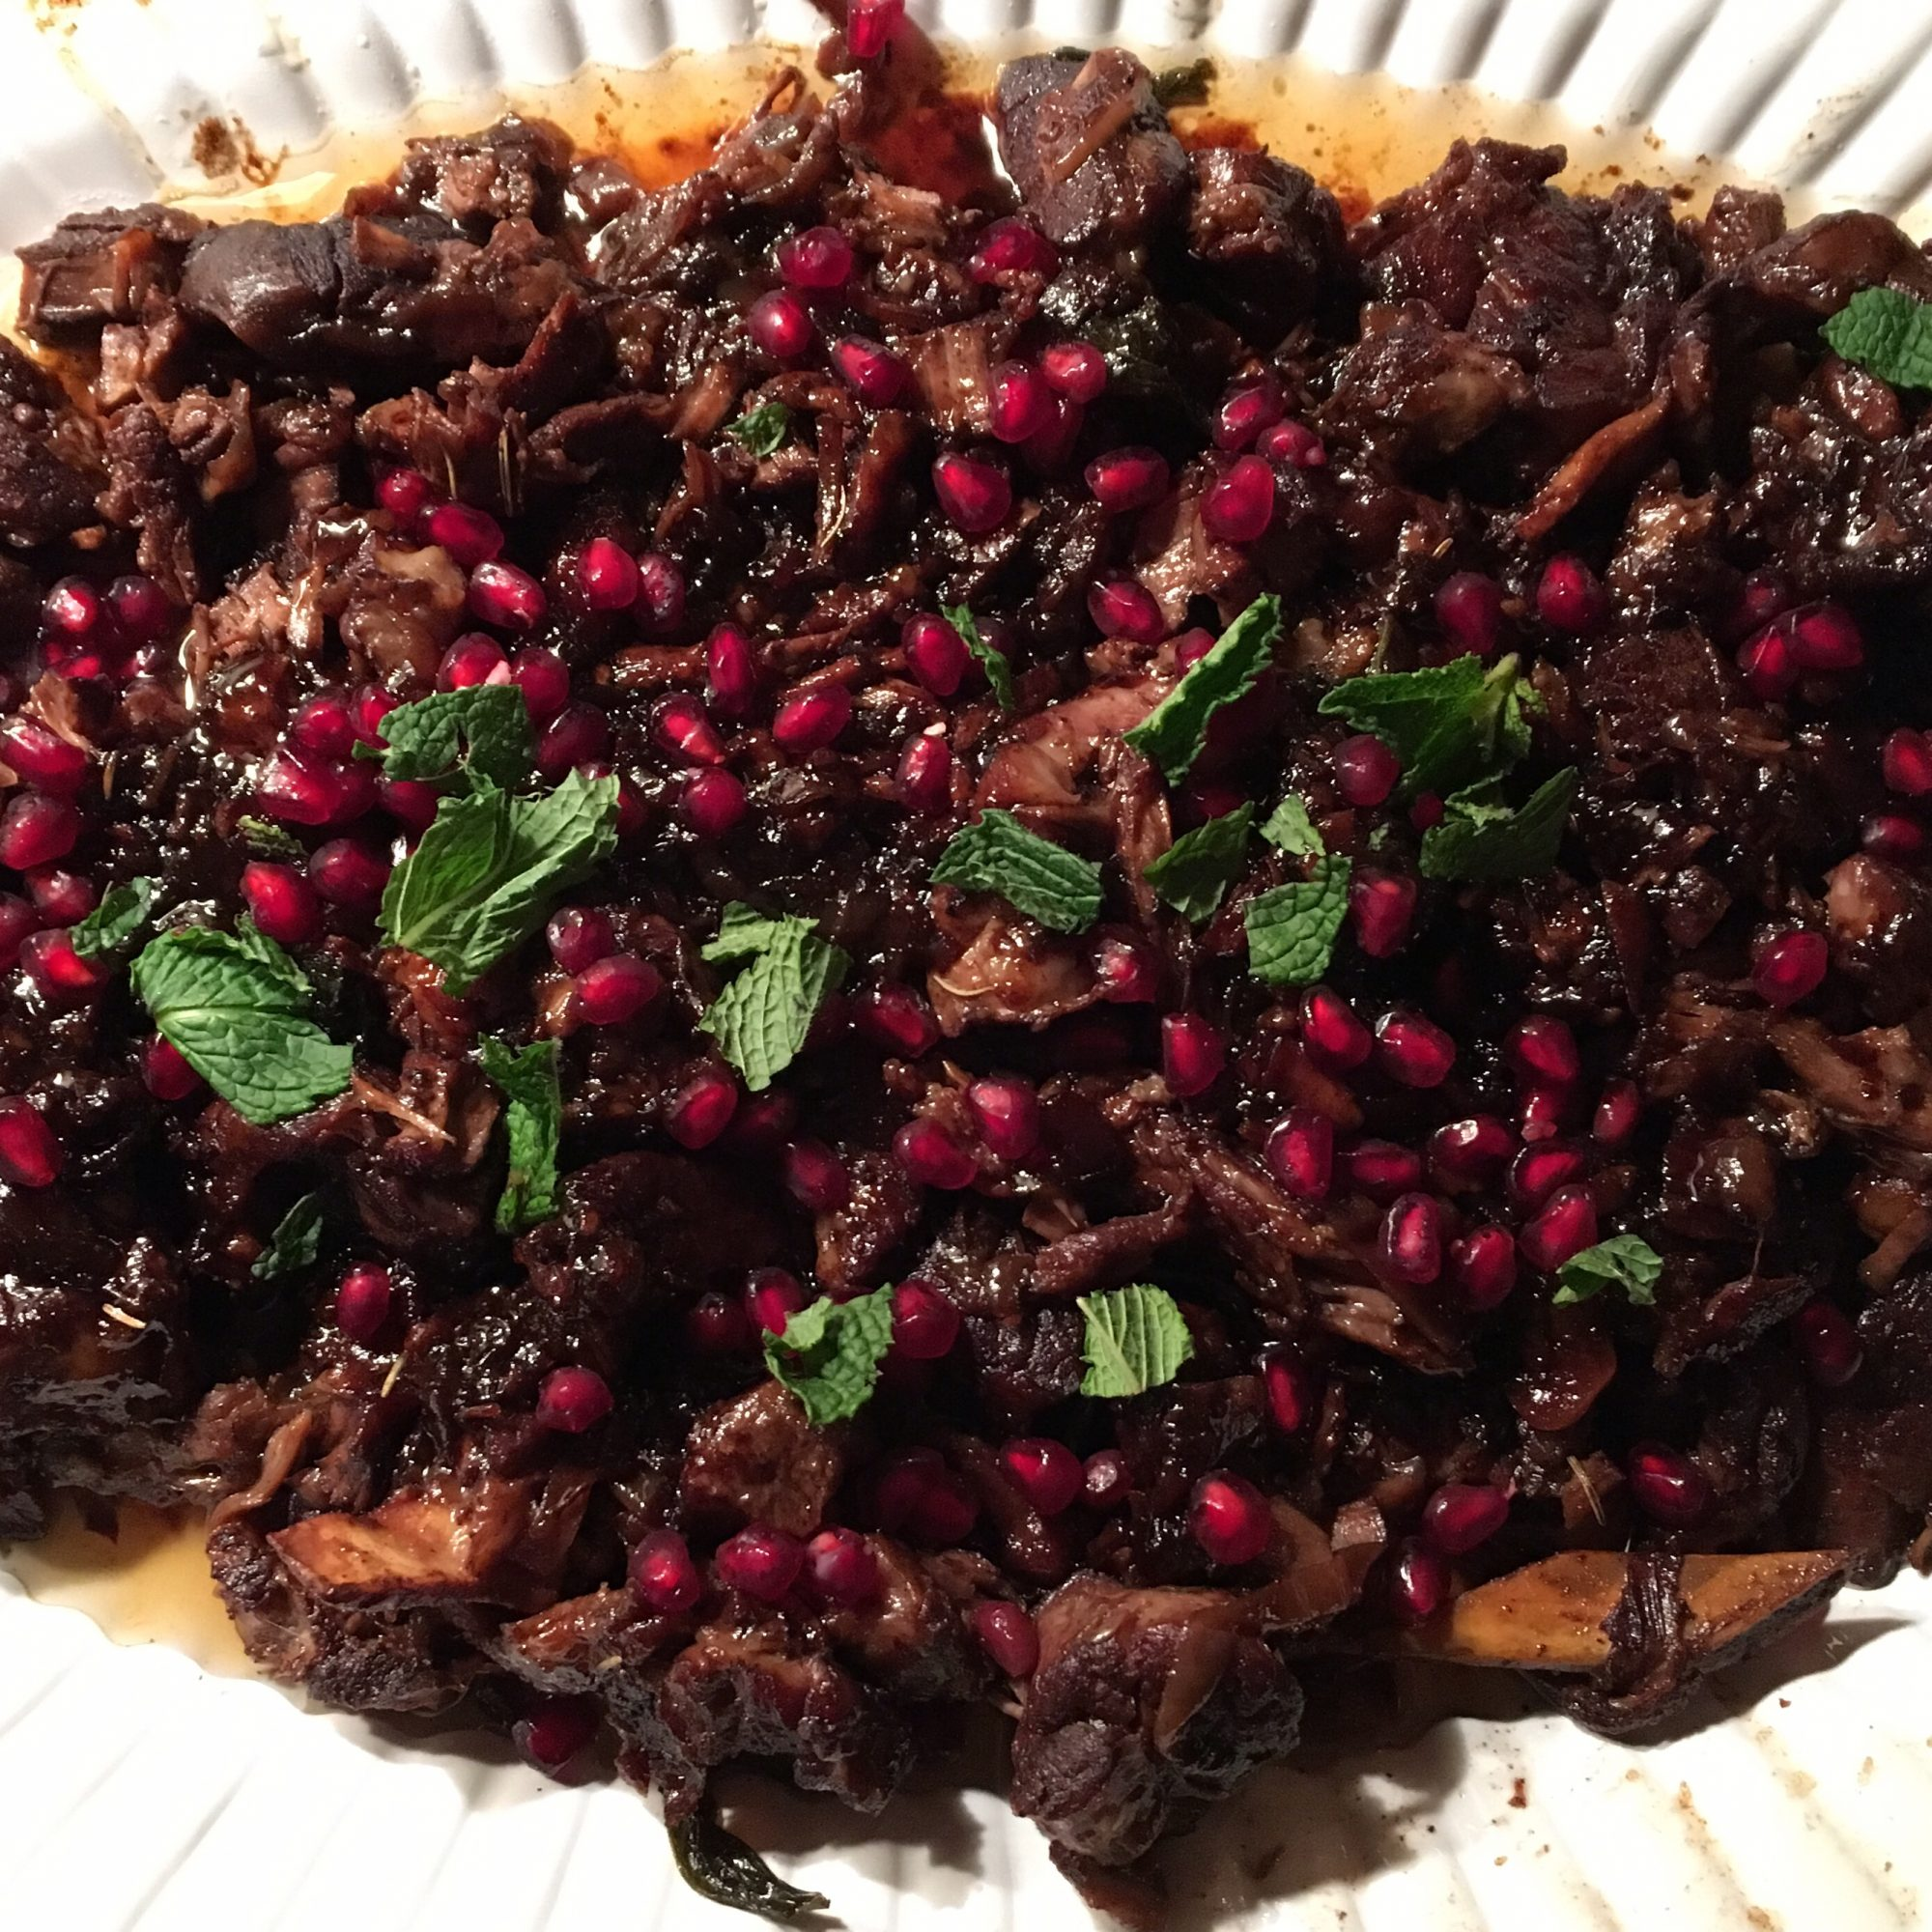 a platter of lamb chops garnished with pomegranate arils and fresh mint